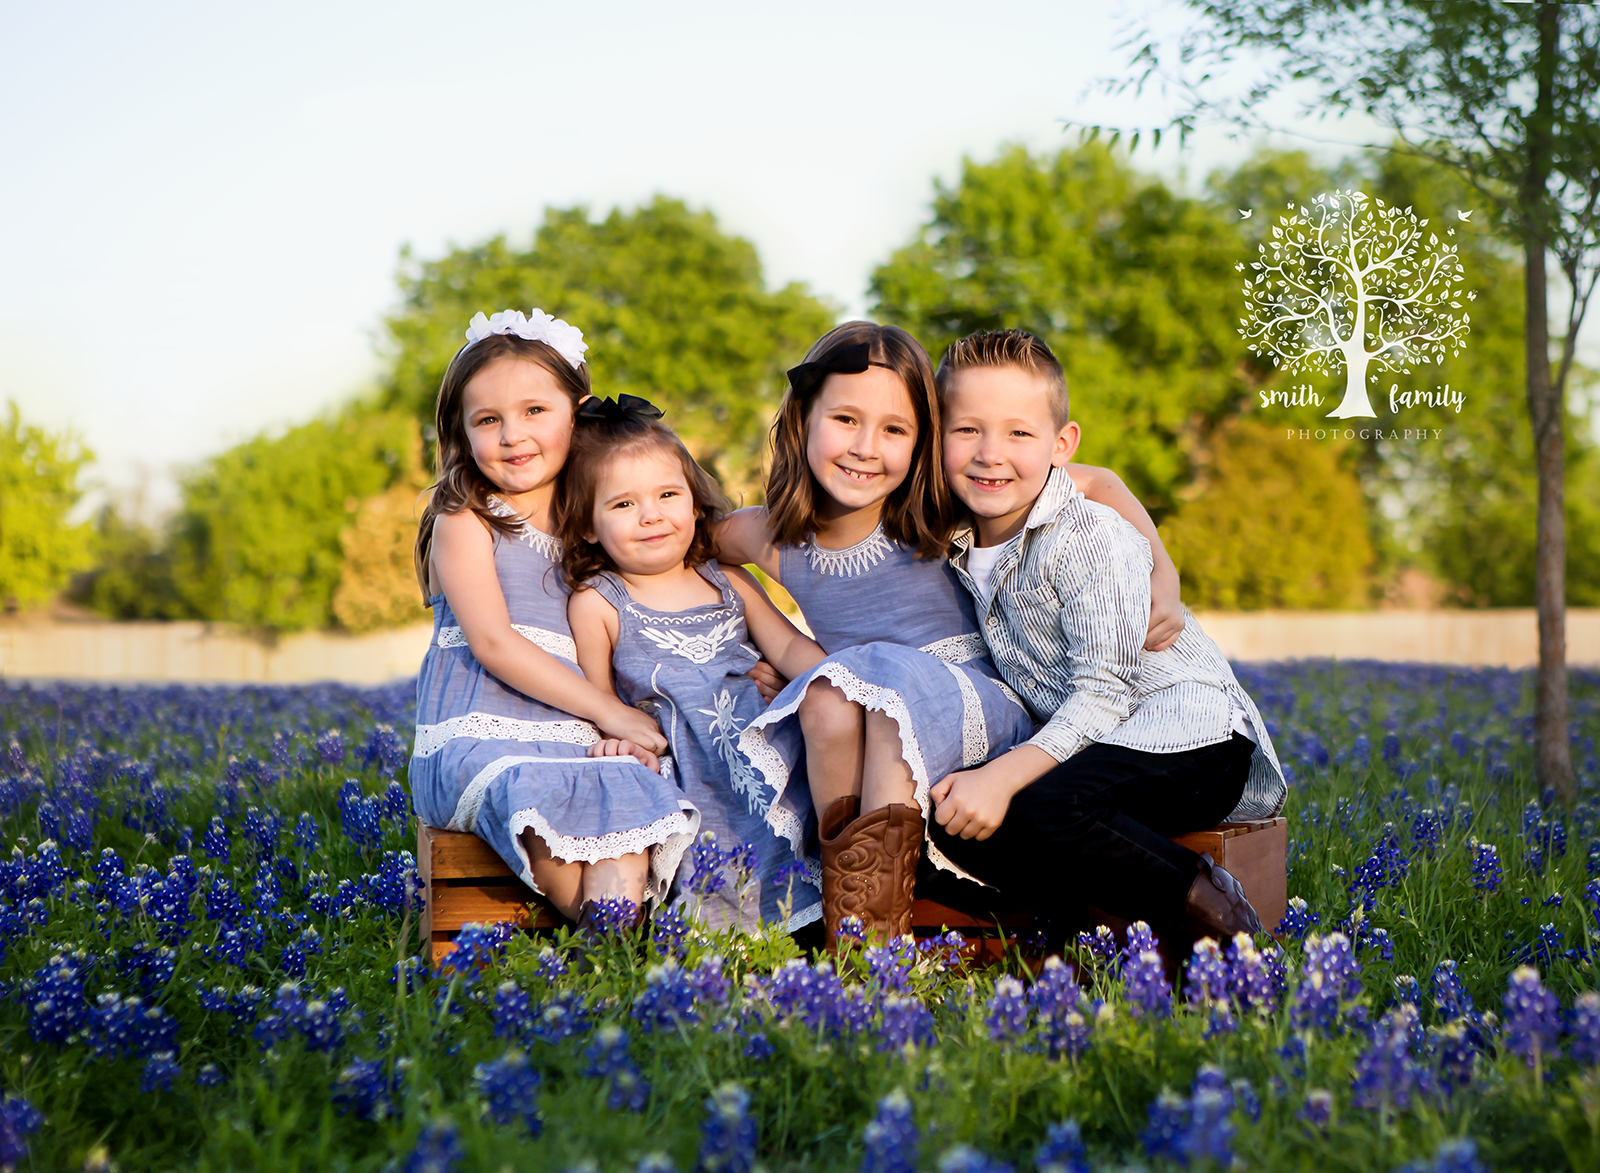 """Anna was great! Super informative from before booking until ordering pictures. She is easy to get a hold of and offers so much help and advice, to make sure all needs are met. She was great with my kids. Very relaxed, patient, and easy going. I would recommend her and definitely will be using her as our photographer in the future."" - Misty S."